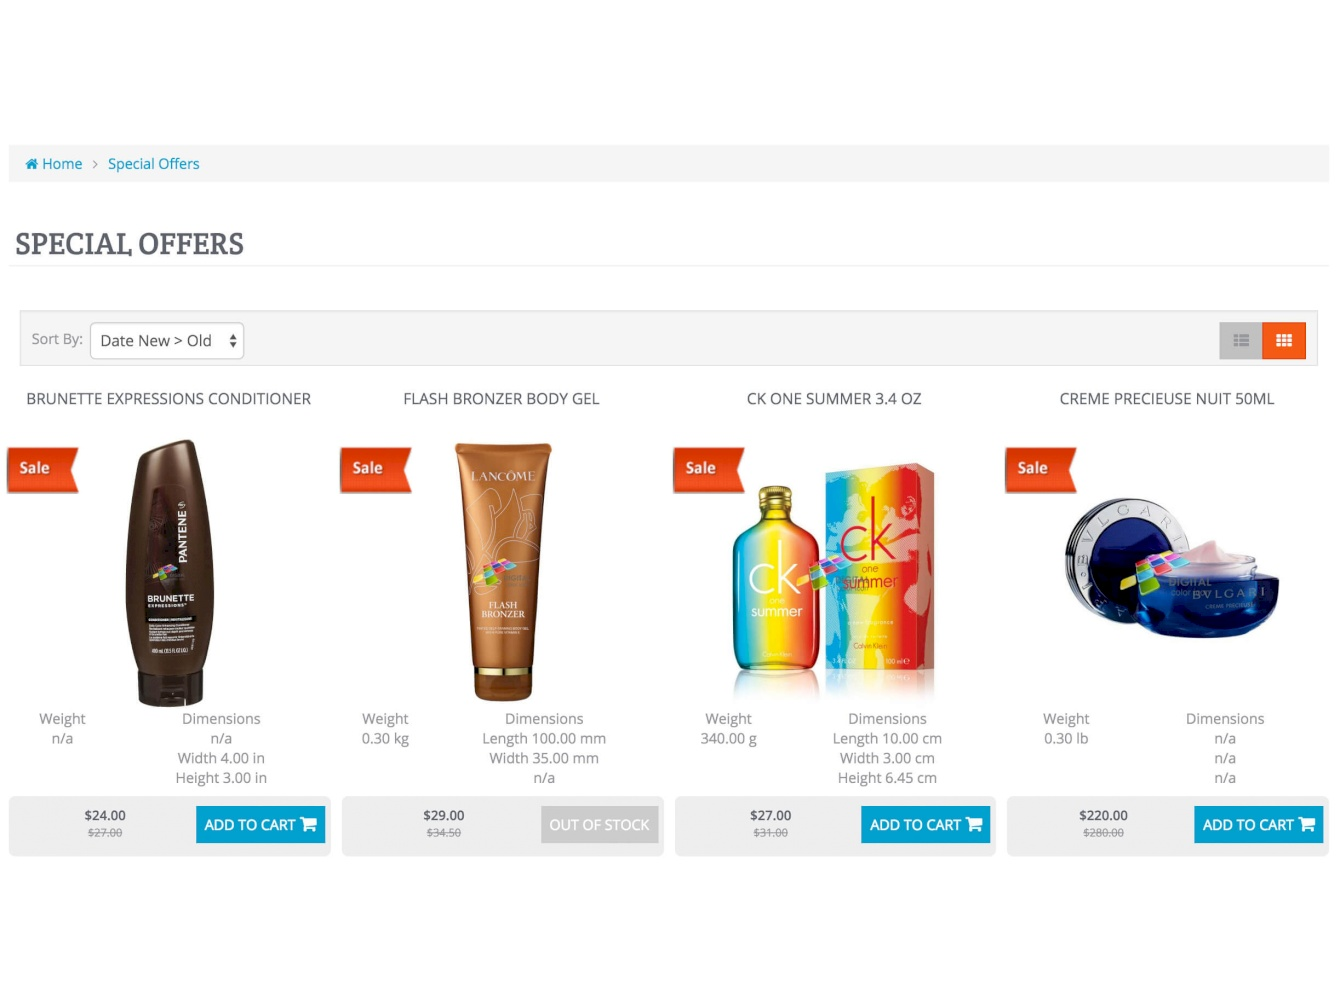 Show Weight & Dimensions: category and product pages